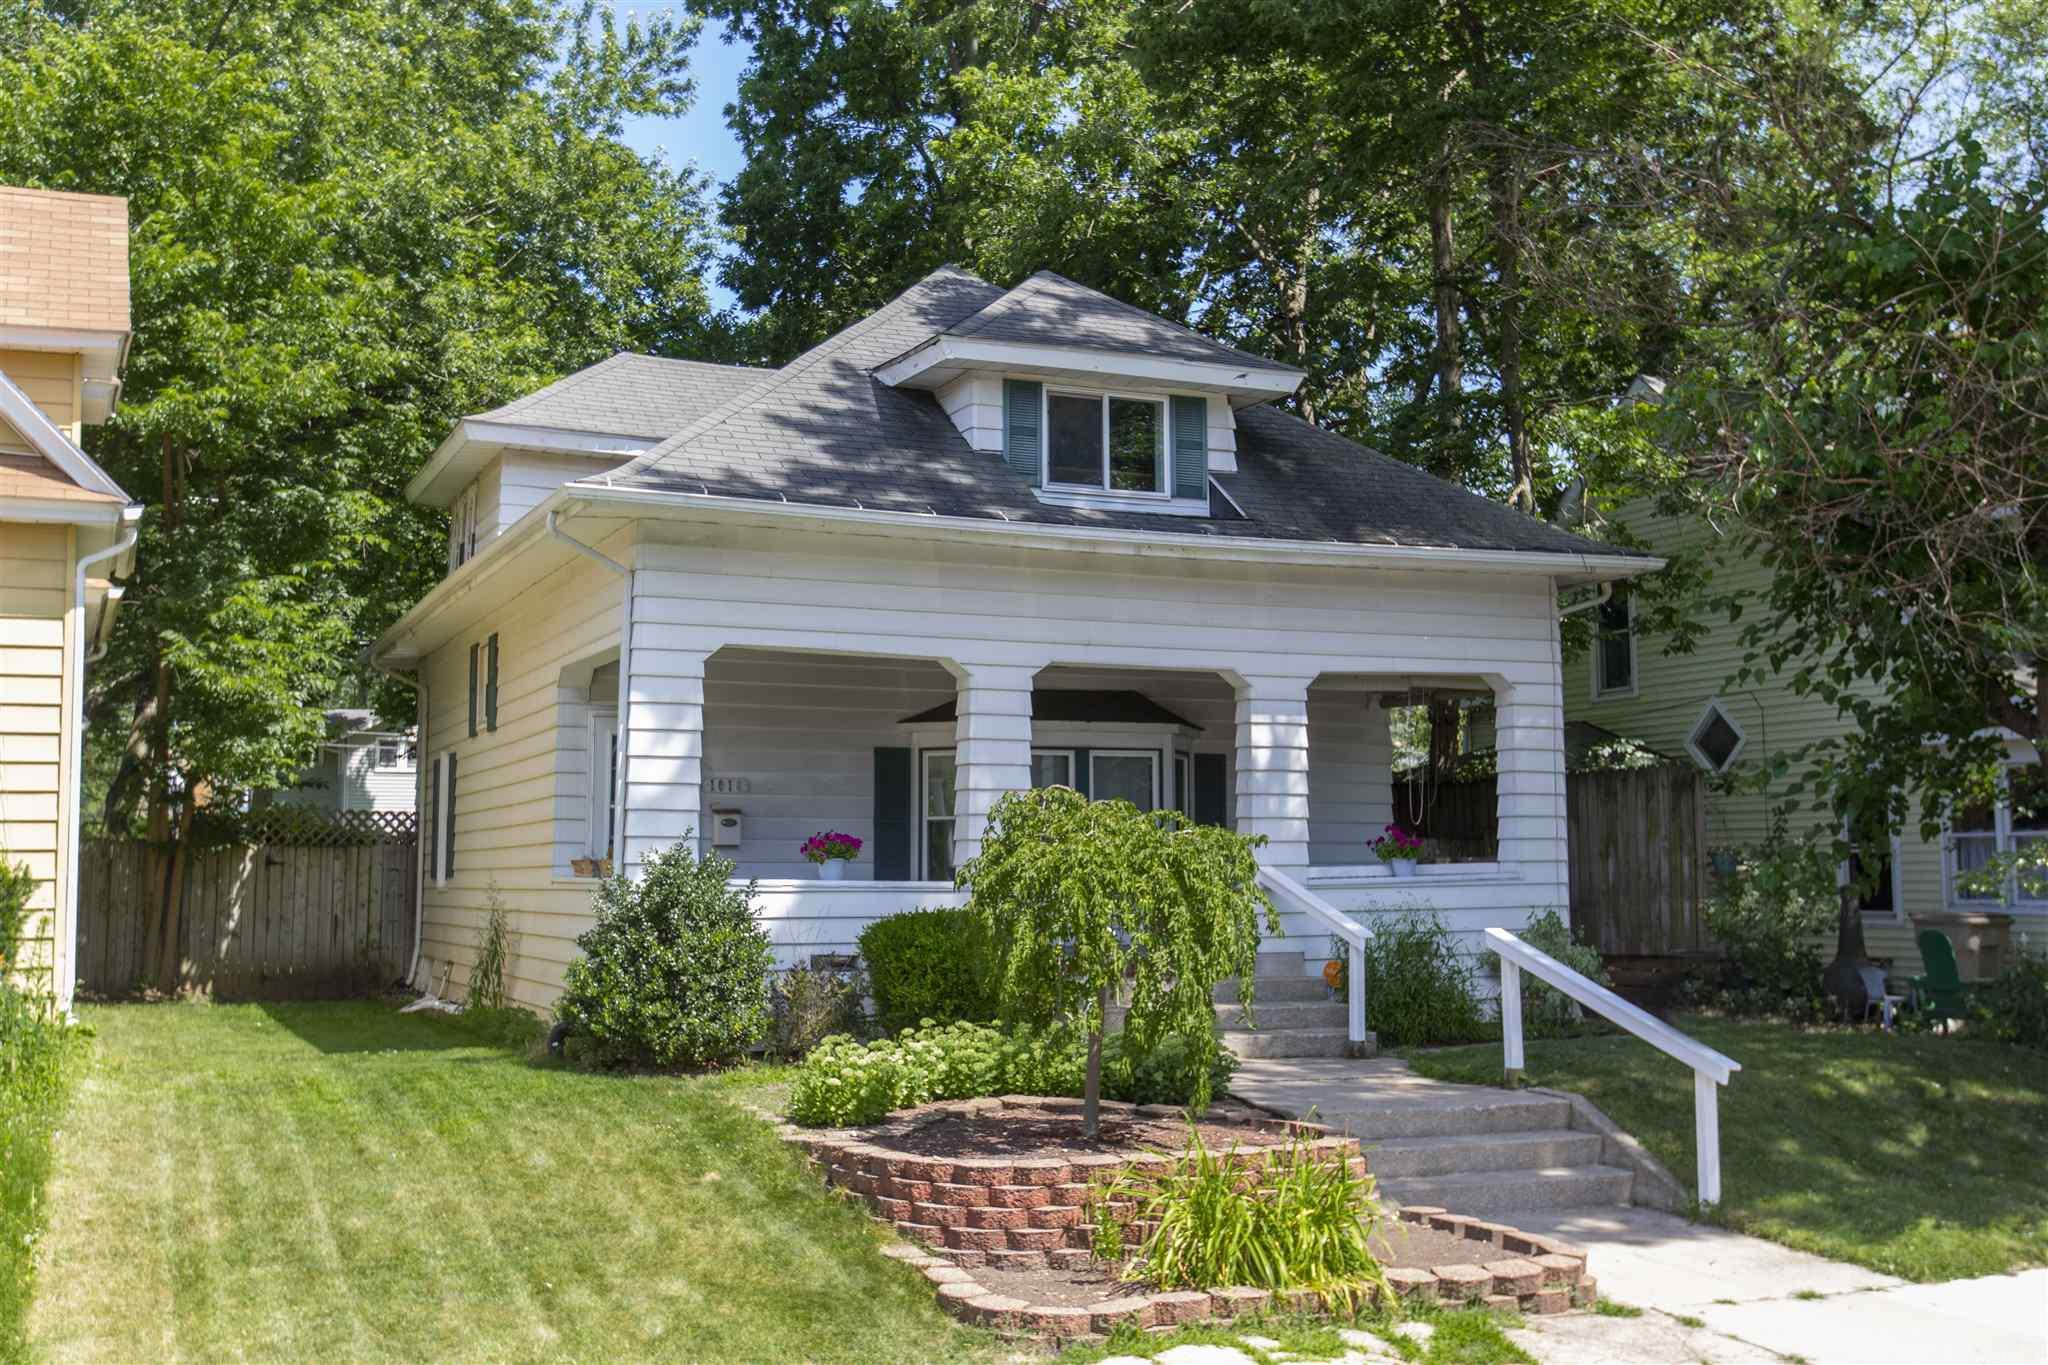 1016 Clover South Bend, IN 46615